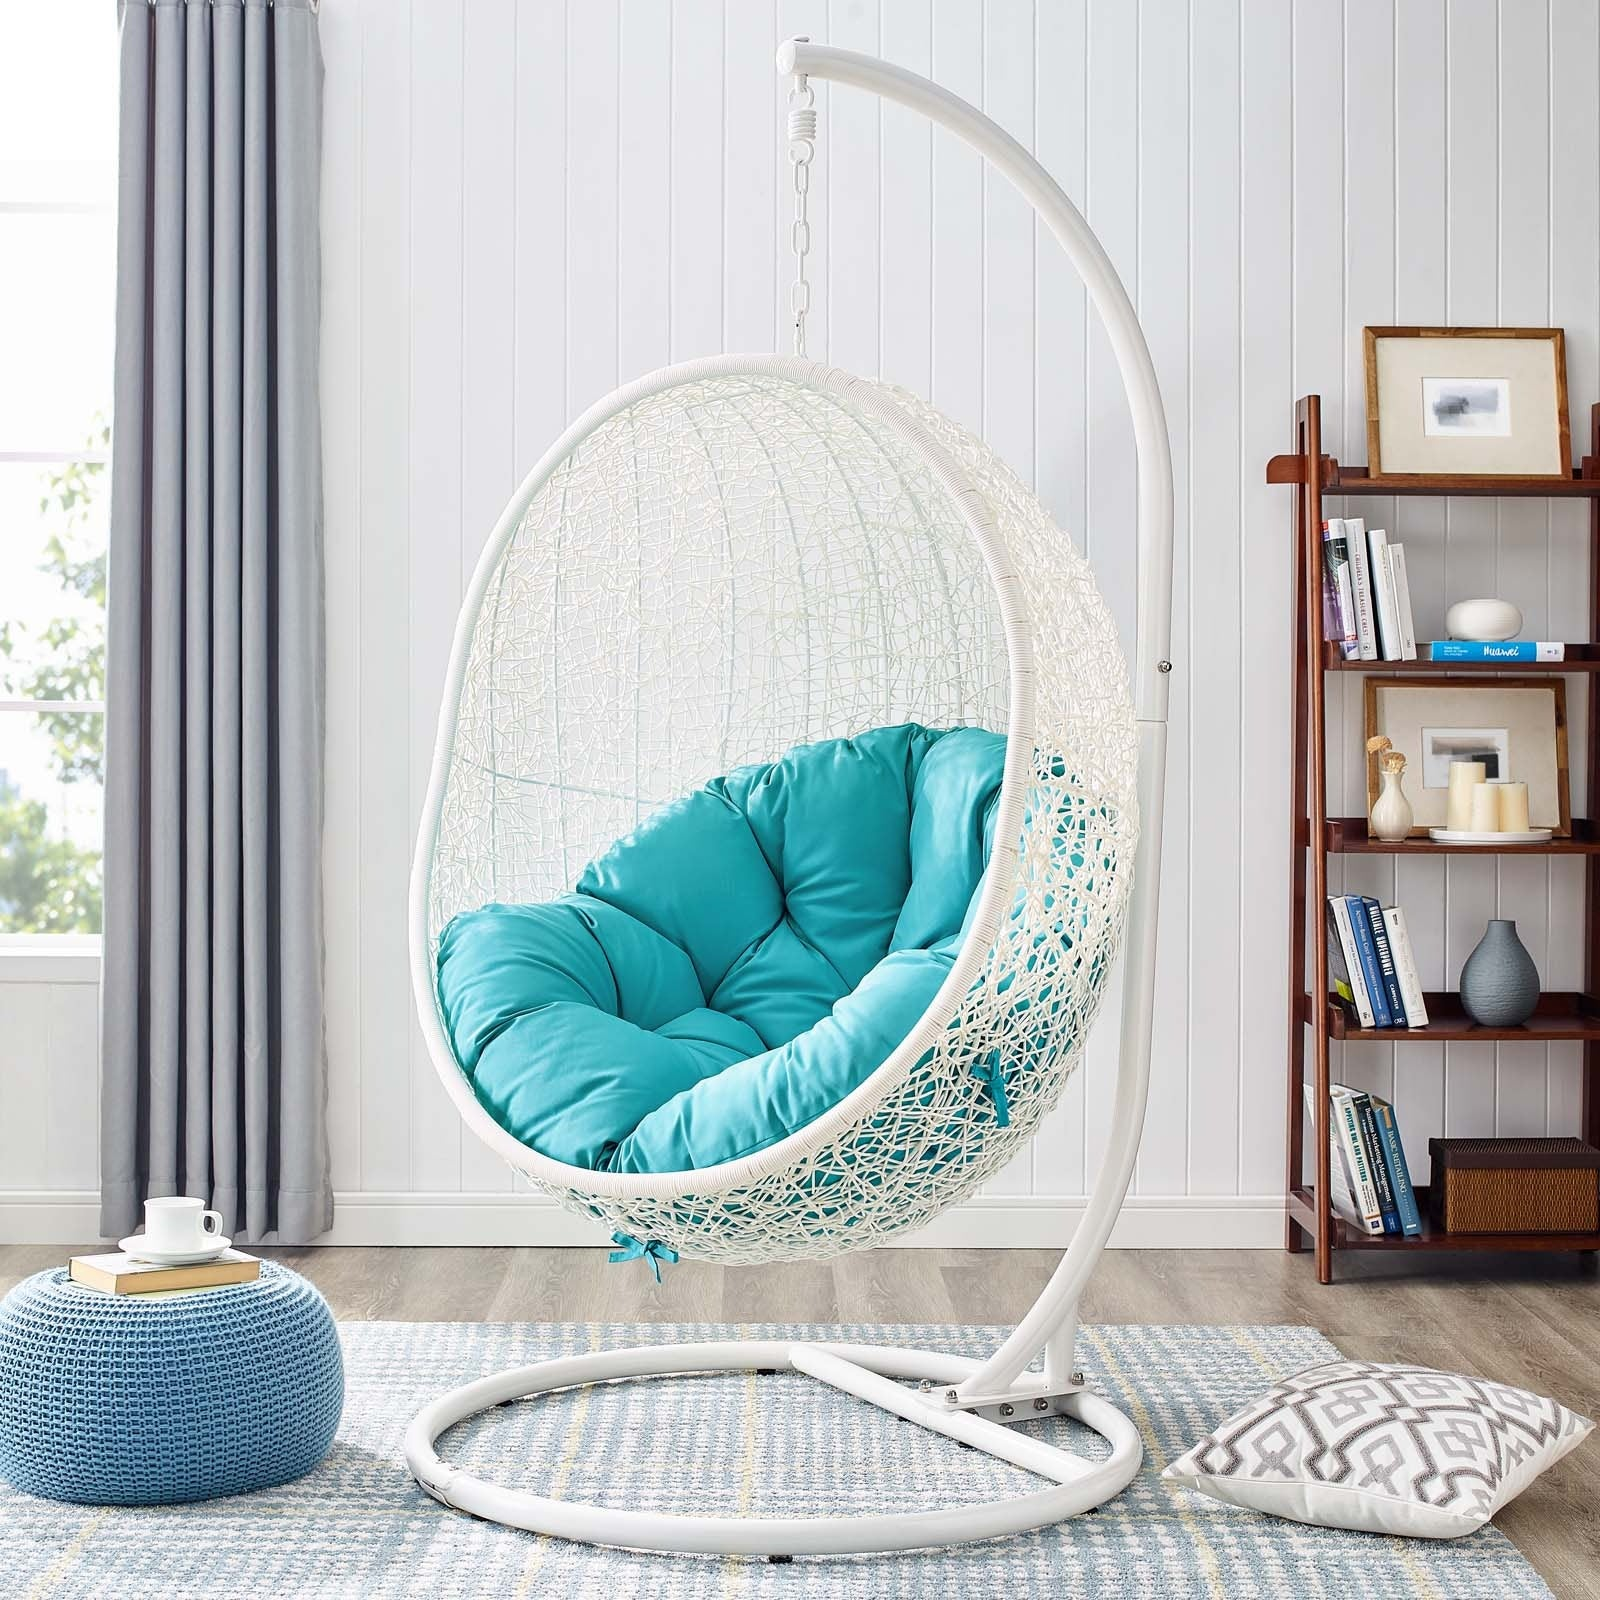 Hide Outdoor Patio Swing Chair With Stand - White Turquoise